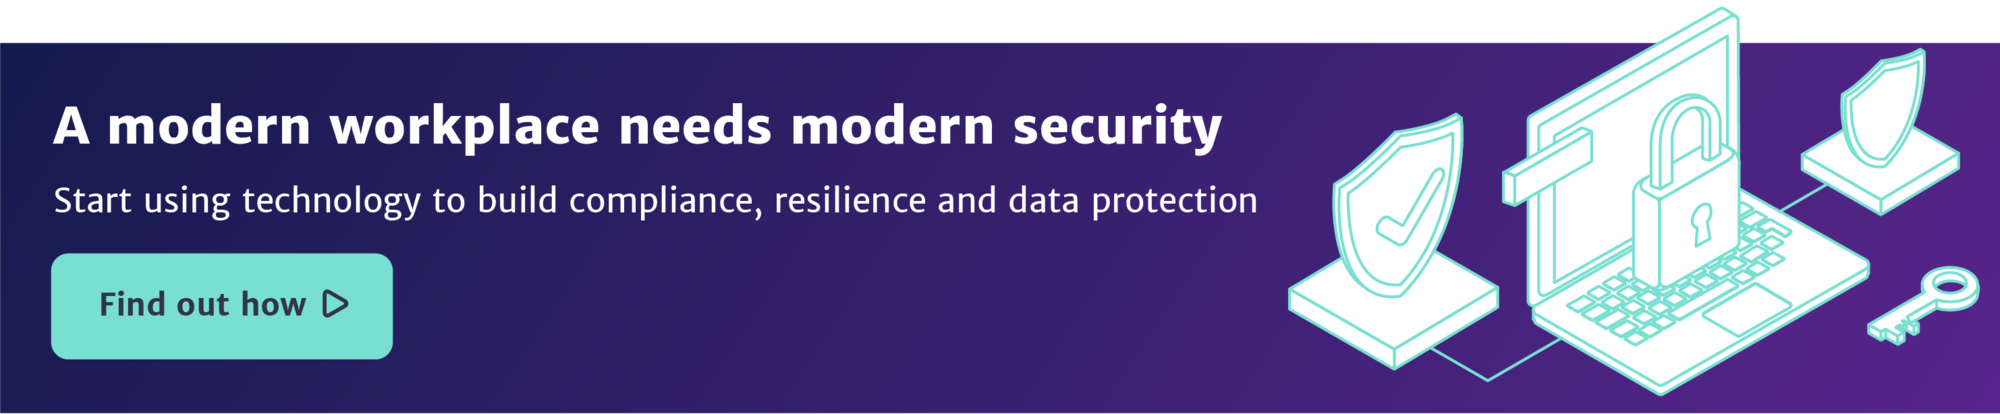 Free IT security whitepaper for private equity firms: How to use technology to build compliance, resilience and data protection into your business